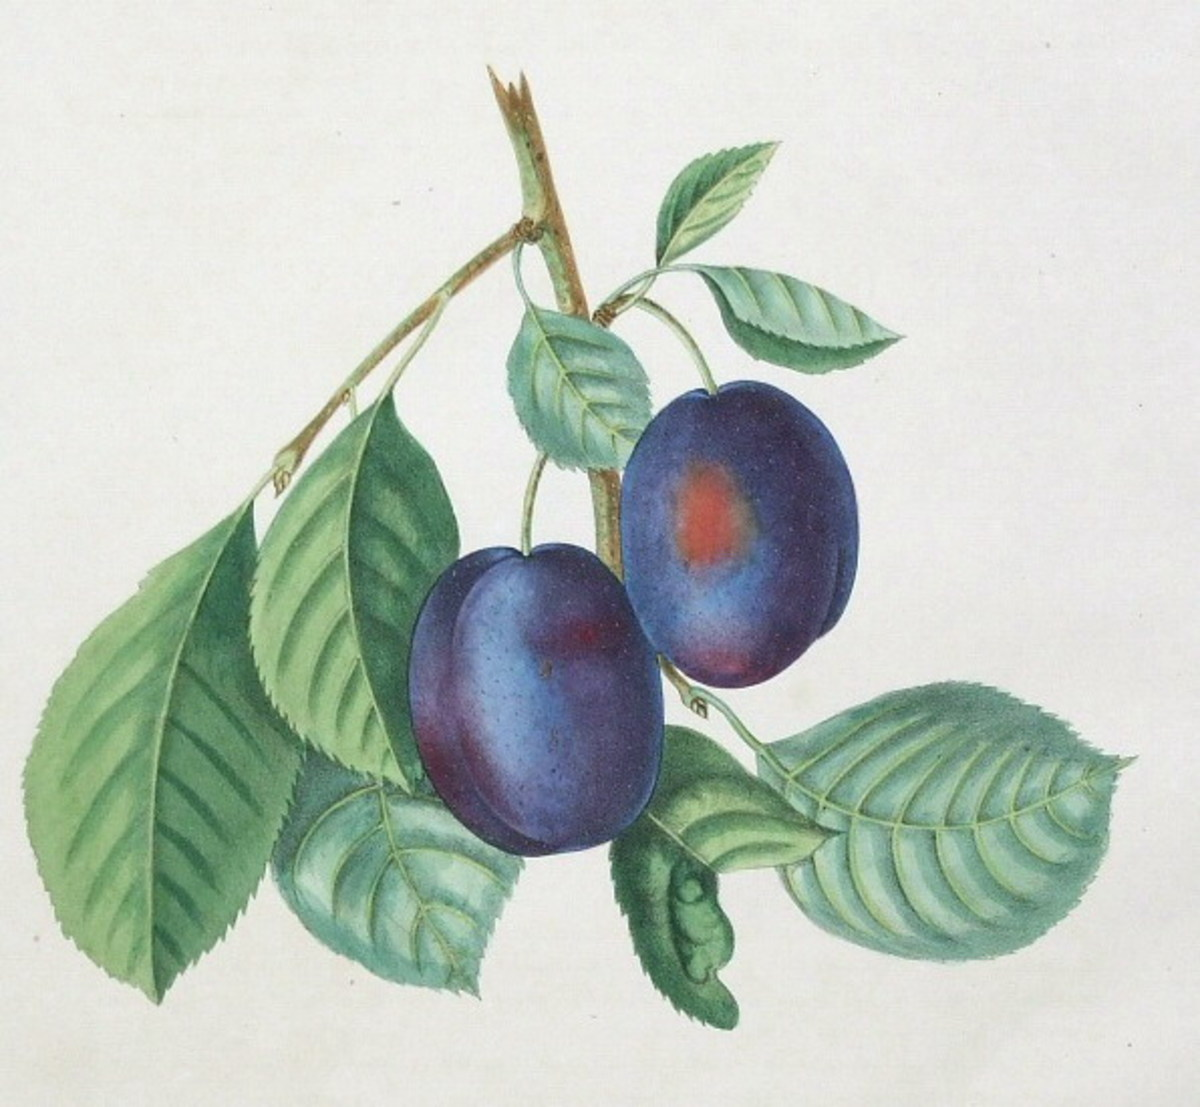 Vintage fruit clip art: figs